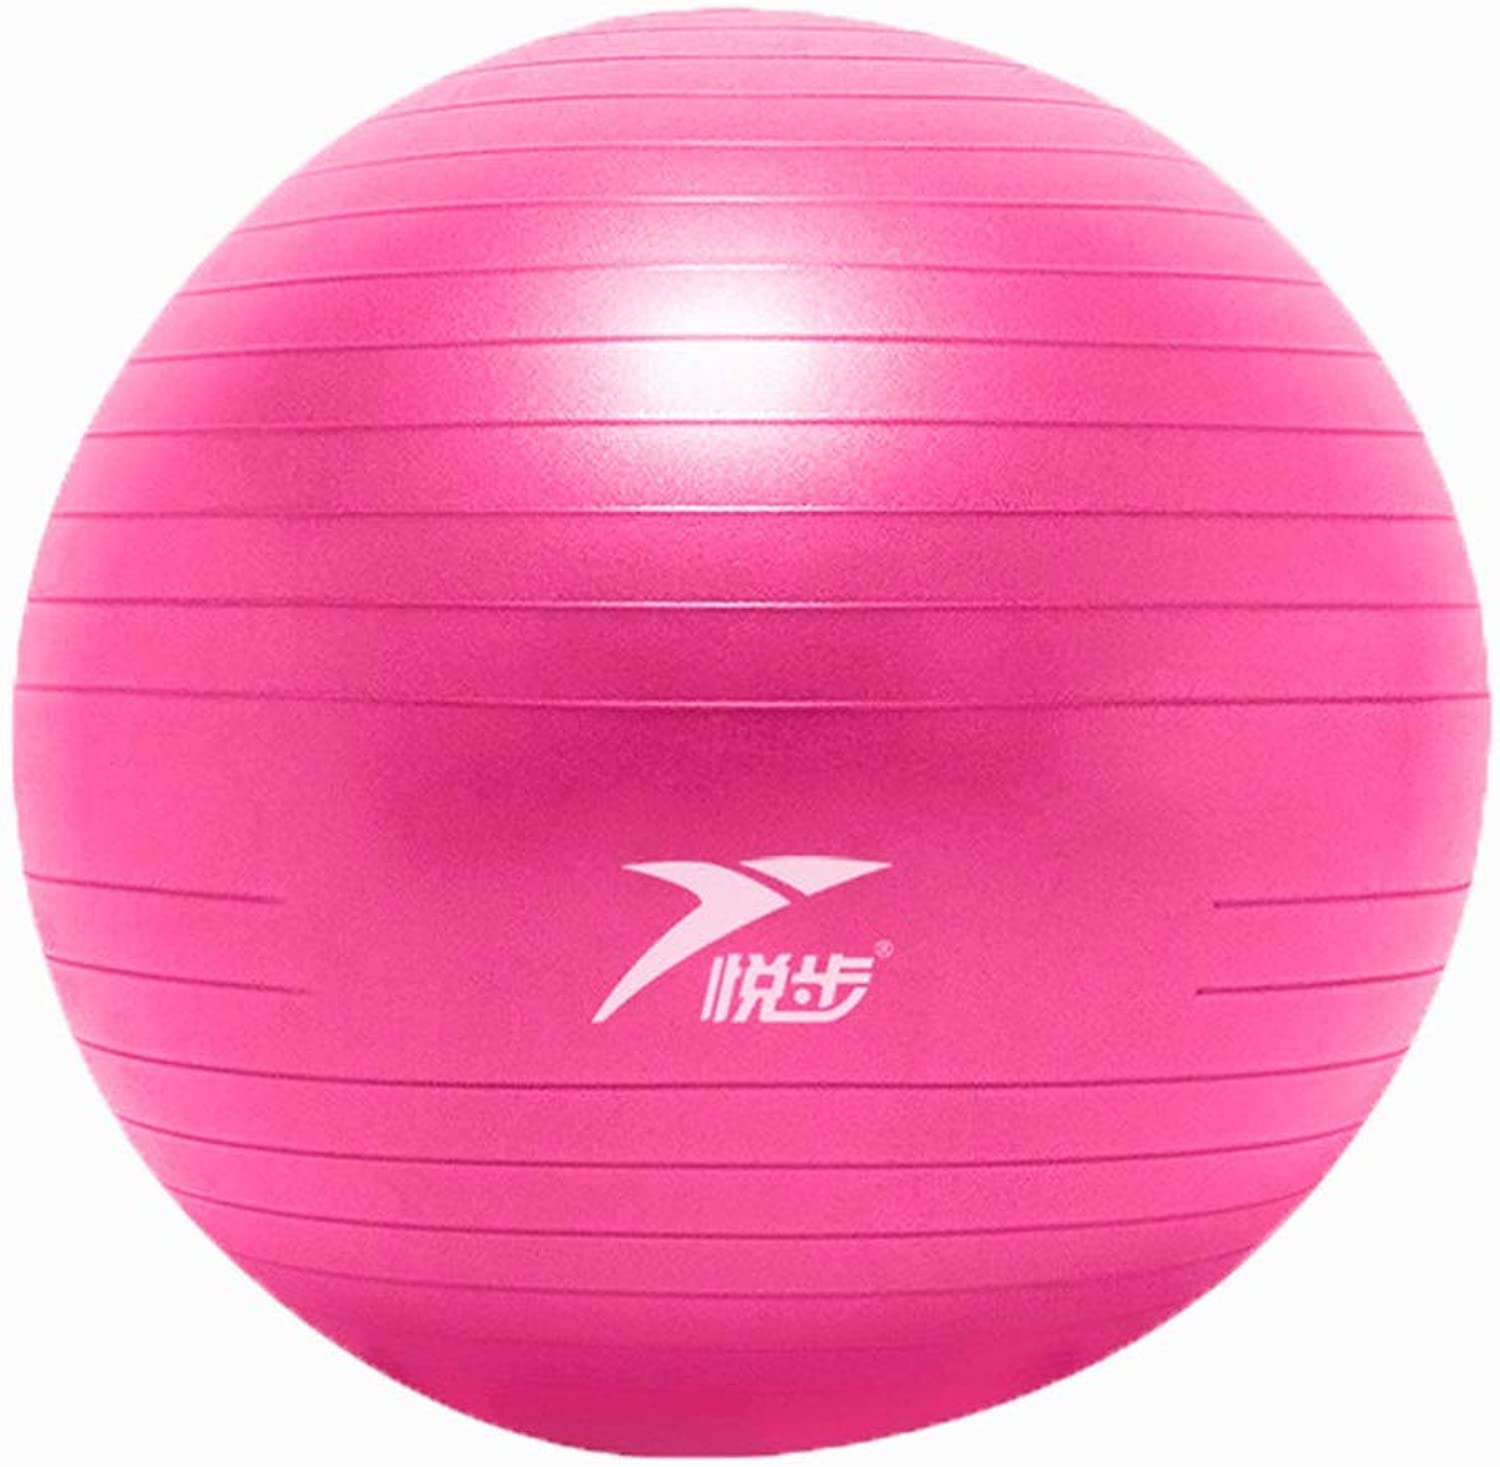 Yoga Ball Gym Ball Thicken Advanced Explosion Proof Lose Weight Balance Yoga Ball Safe and Tasteless (color   Pink, Size   75CM)